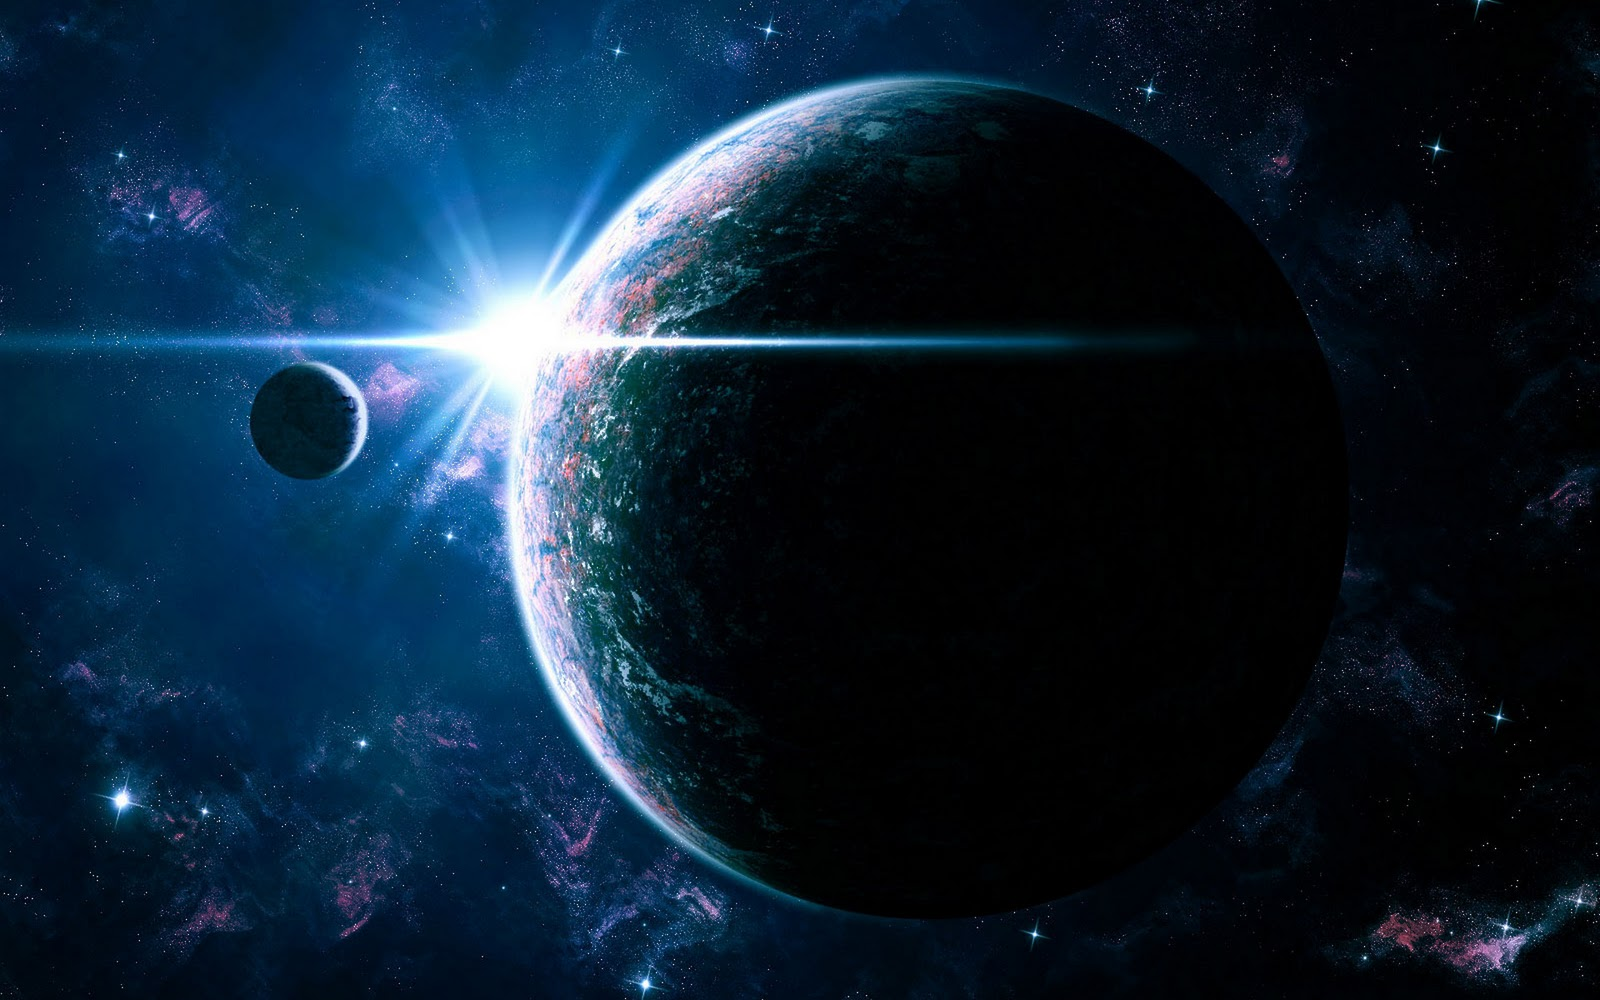 wallpapers hd 76 wallpapers space universe full hd